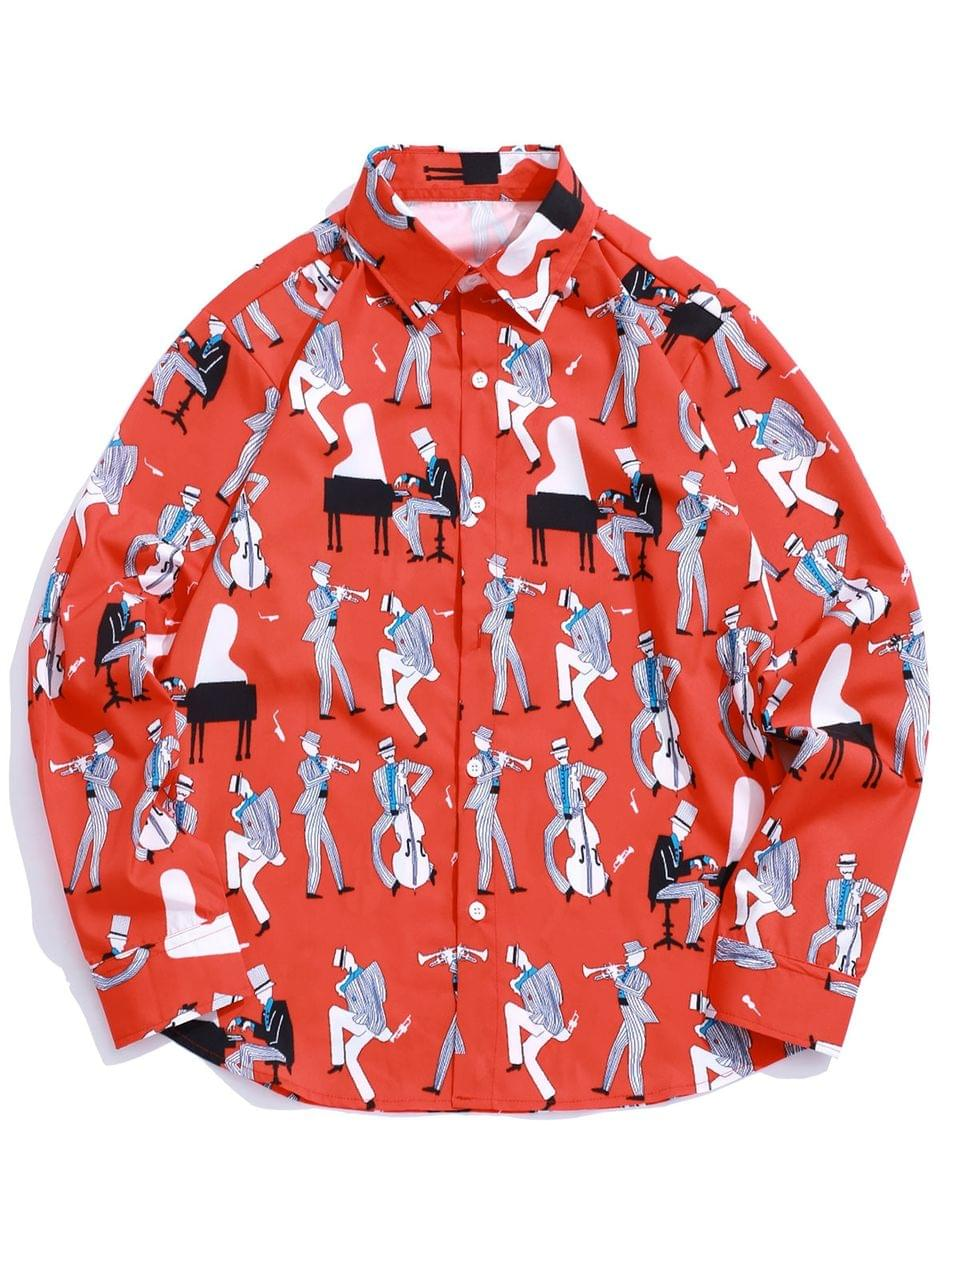 Men's Playing Music Men Print Long Sleeve Casual Shirt - Ruby Red 2xl